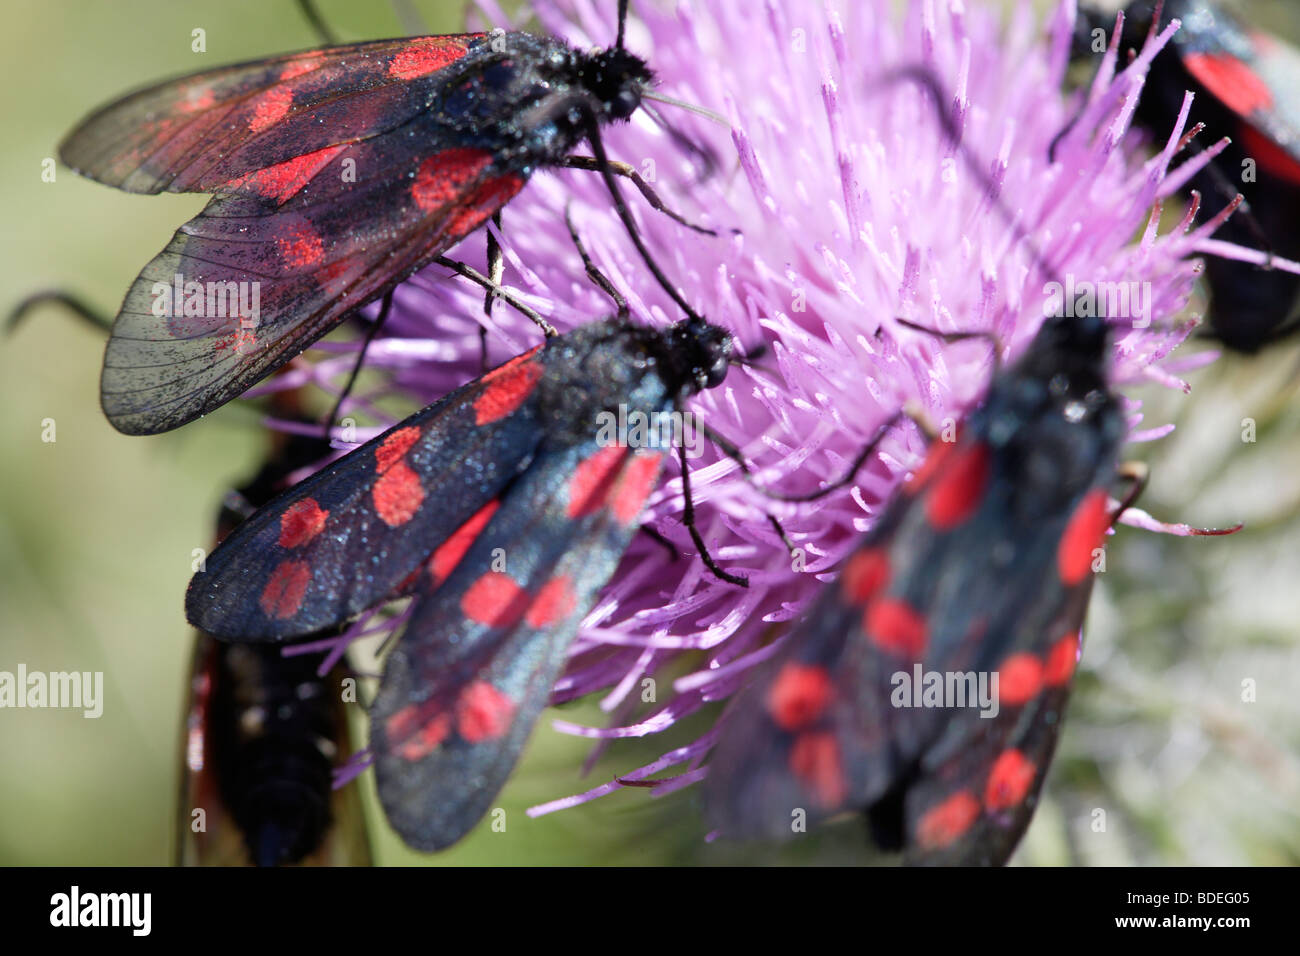 Brightly coloured insects on a thistle flower - Stock Image